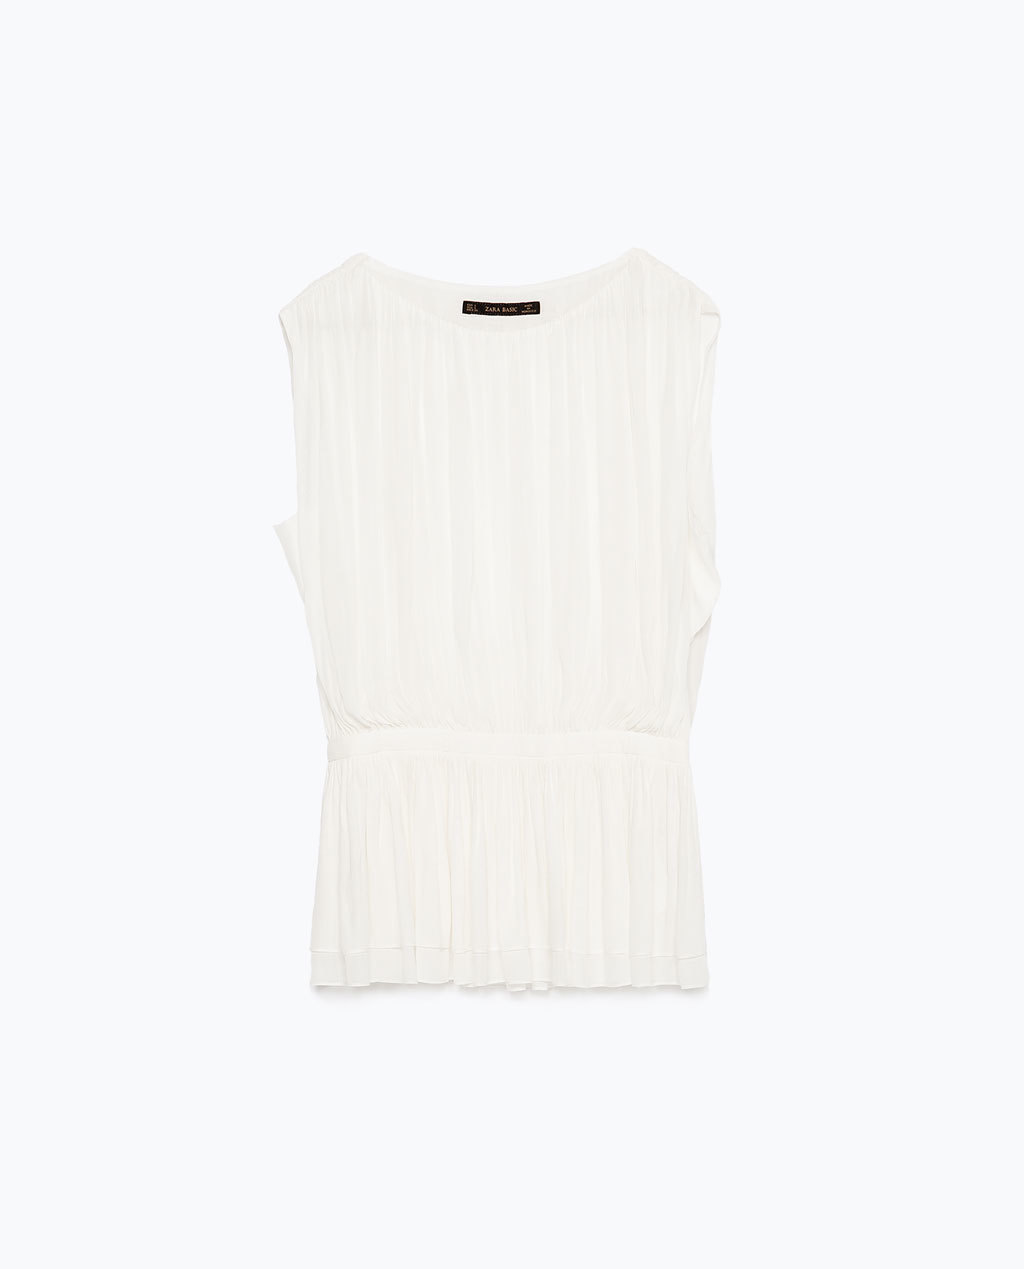 Draped Top - pattern: plain; sleeve style: sleeveless; style: vest top; predominant colour: ivory/cream; occasions: casual, evening; length: standard; fibres: polyester/polyamide - 100%; fit: body skimming; neckline: crew; sleeve length: sleeveless; pattern type: fabric; texture group: other - light to midweight; season: s/s 2015; wardrobe: basic